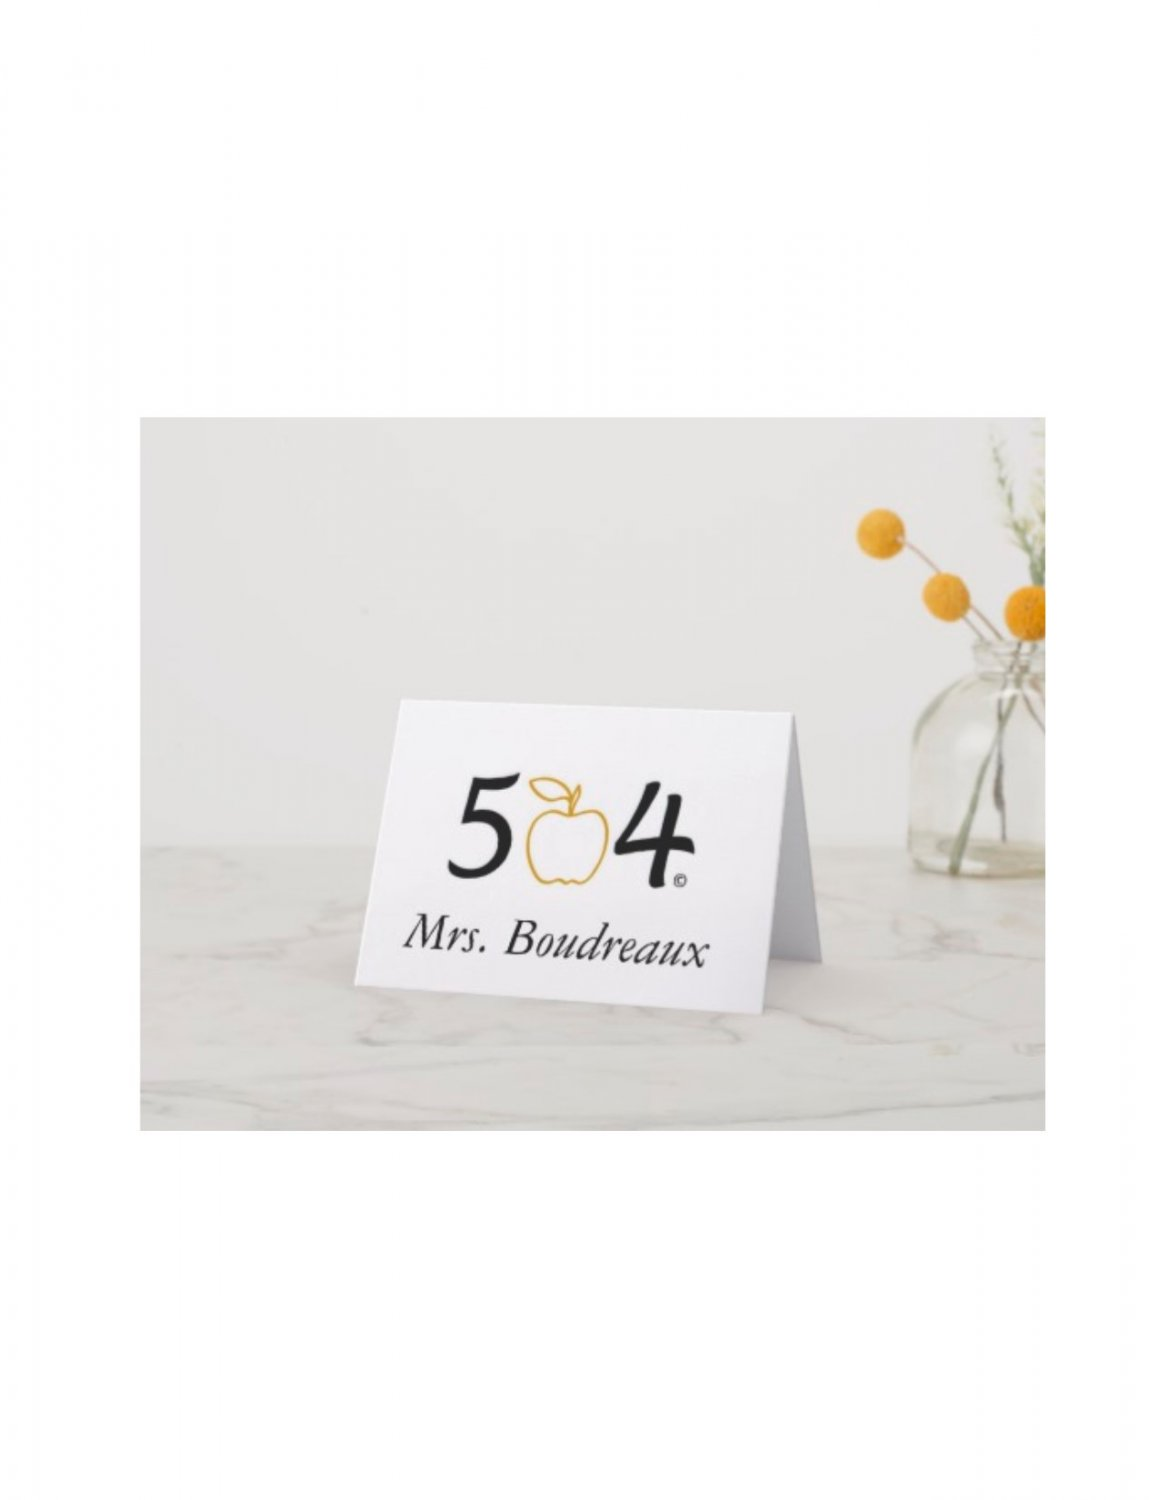 The 504 Teacher Note Cards - Personalized